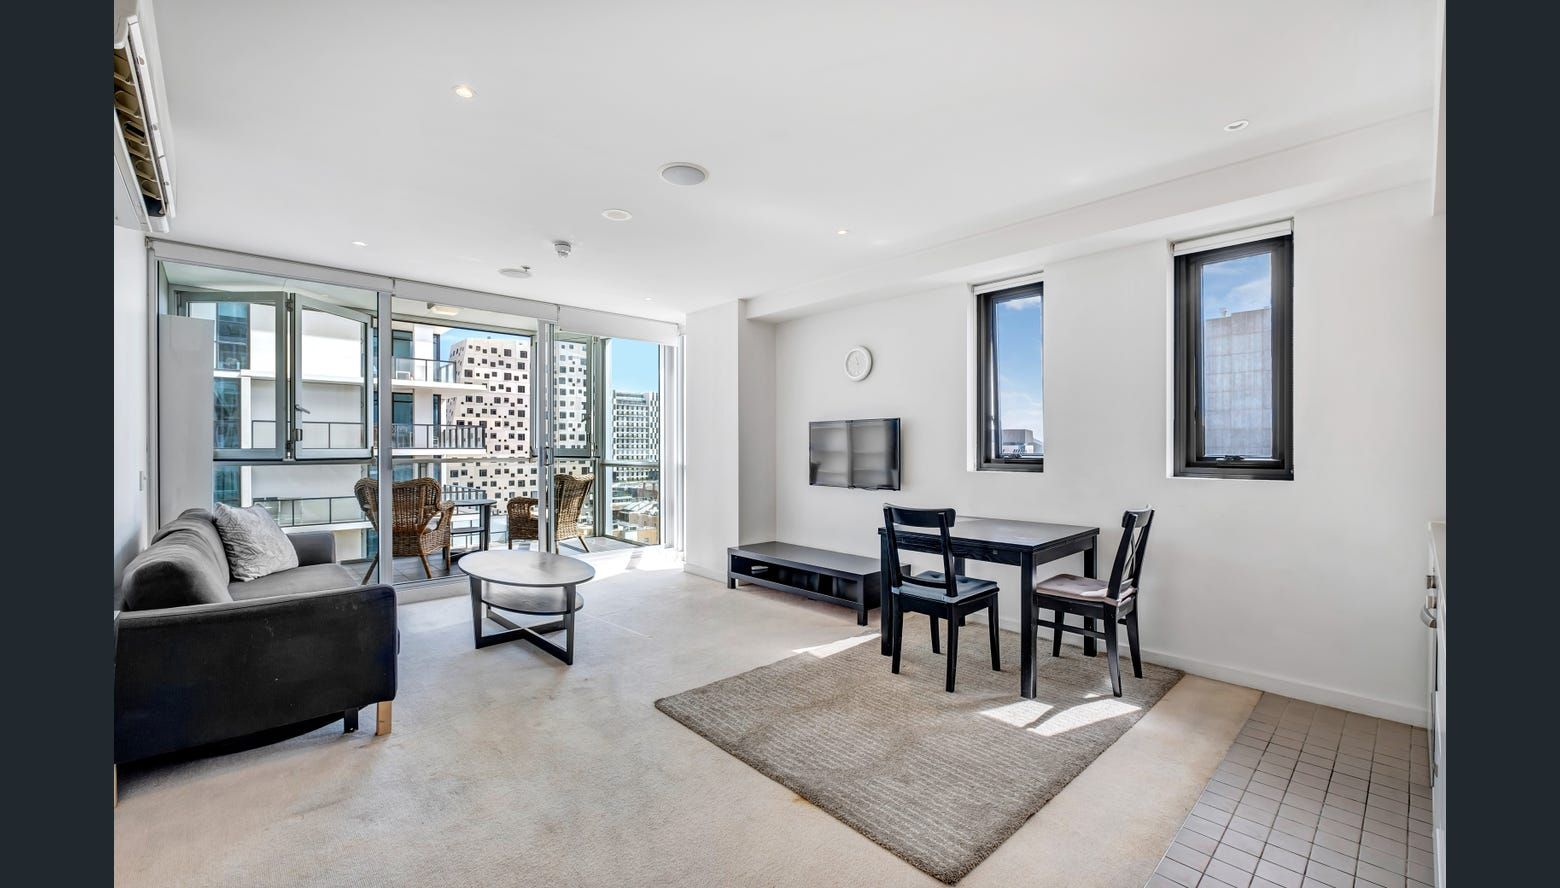 1 bedrooms Apartment / Unit / Flat in 807/10 Balfours  Way ADELAIDE SA, 5000